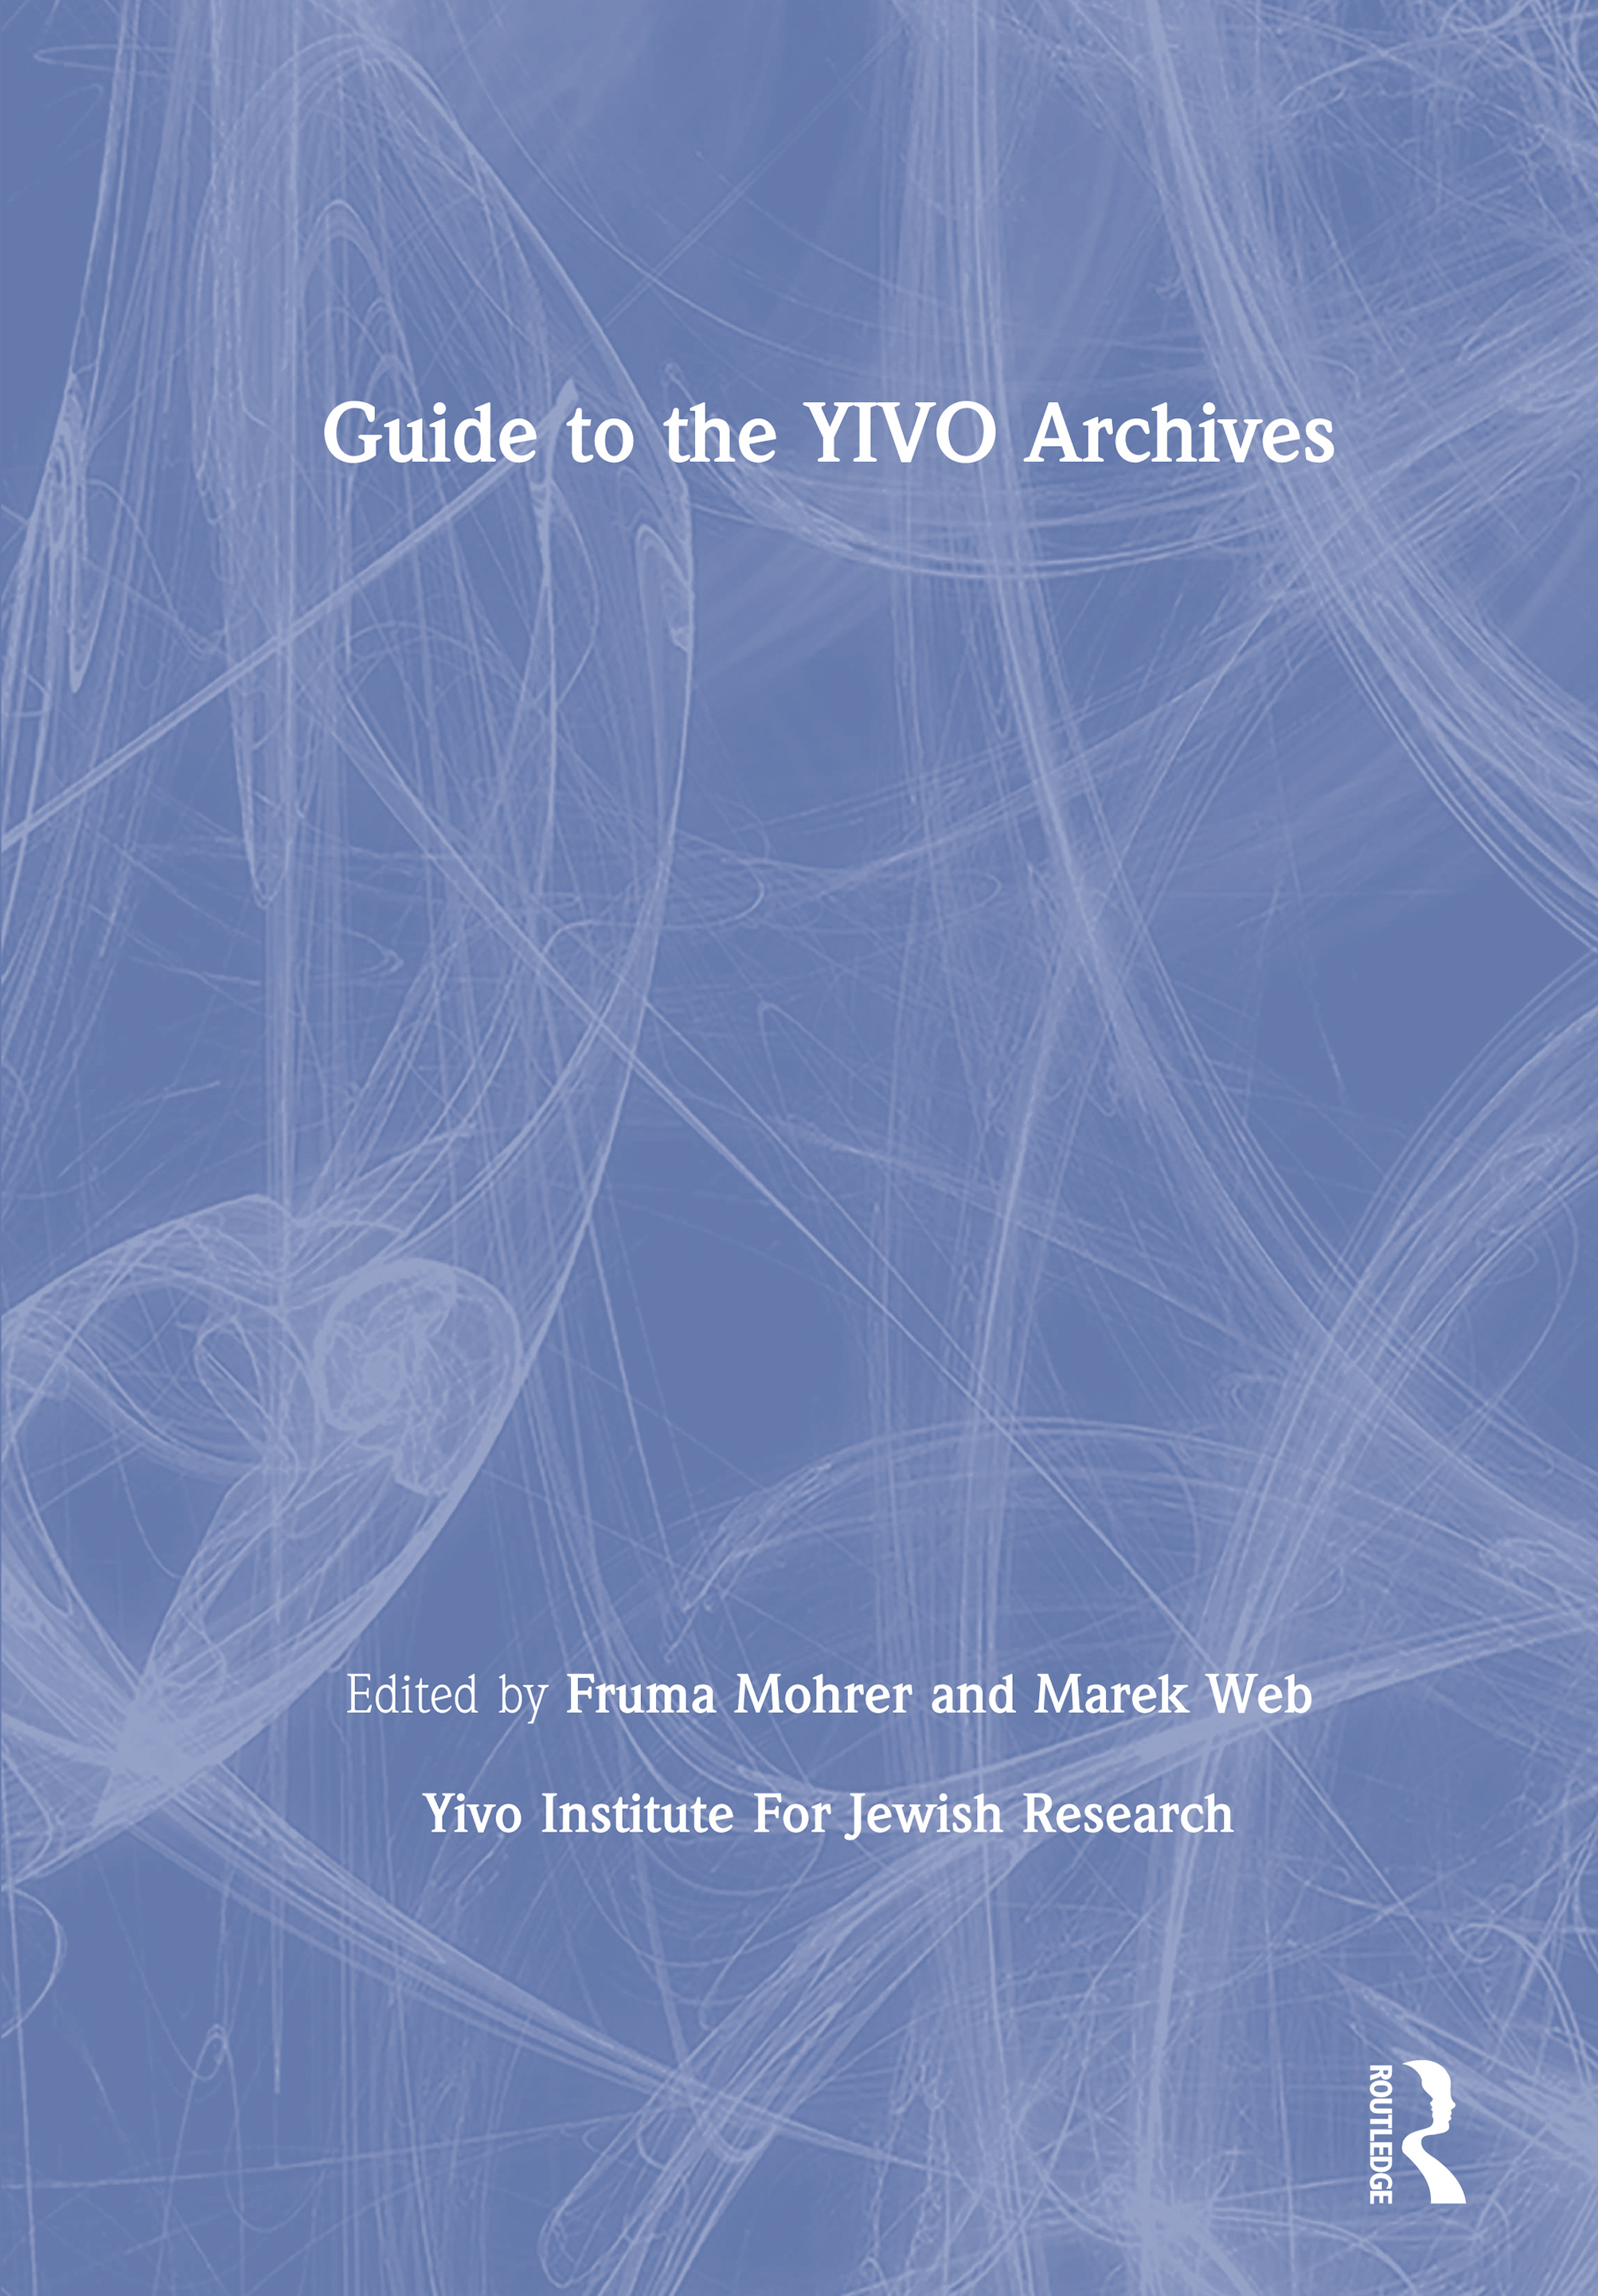 Guide to the YIVO Archives